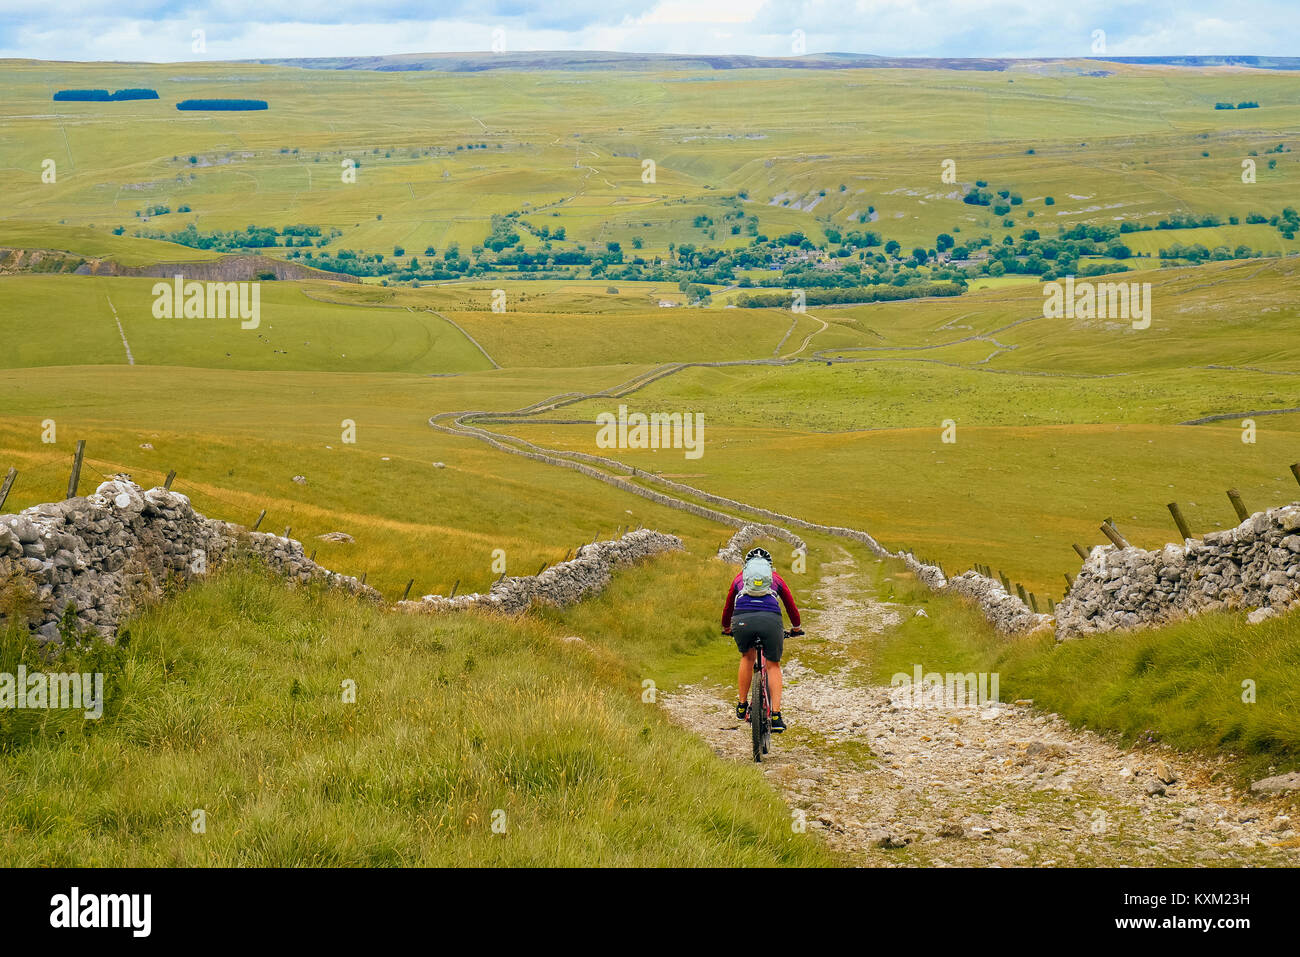 Female mountain biker on the well-known Mastiles Lane in the Yorkshire Dales, descending towards Wharfedale - Stock Image